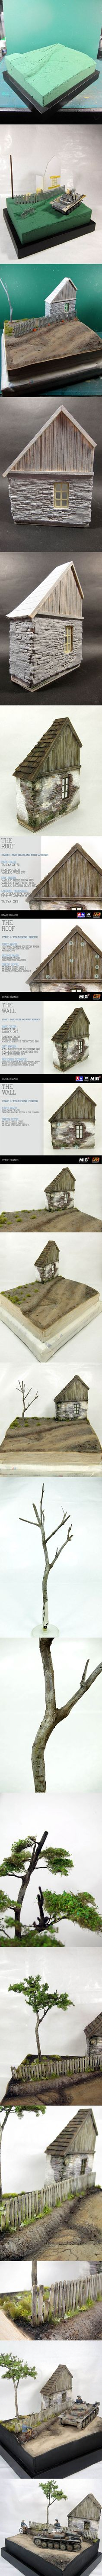 Village diorama - step by step part 1/1